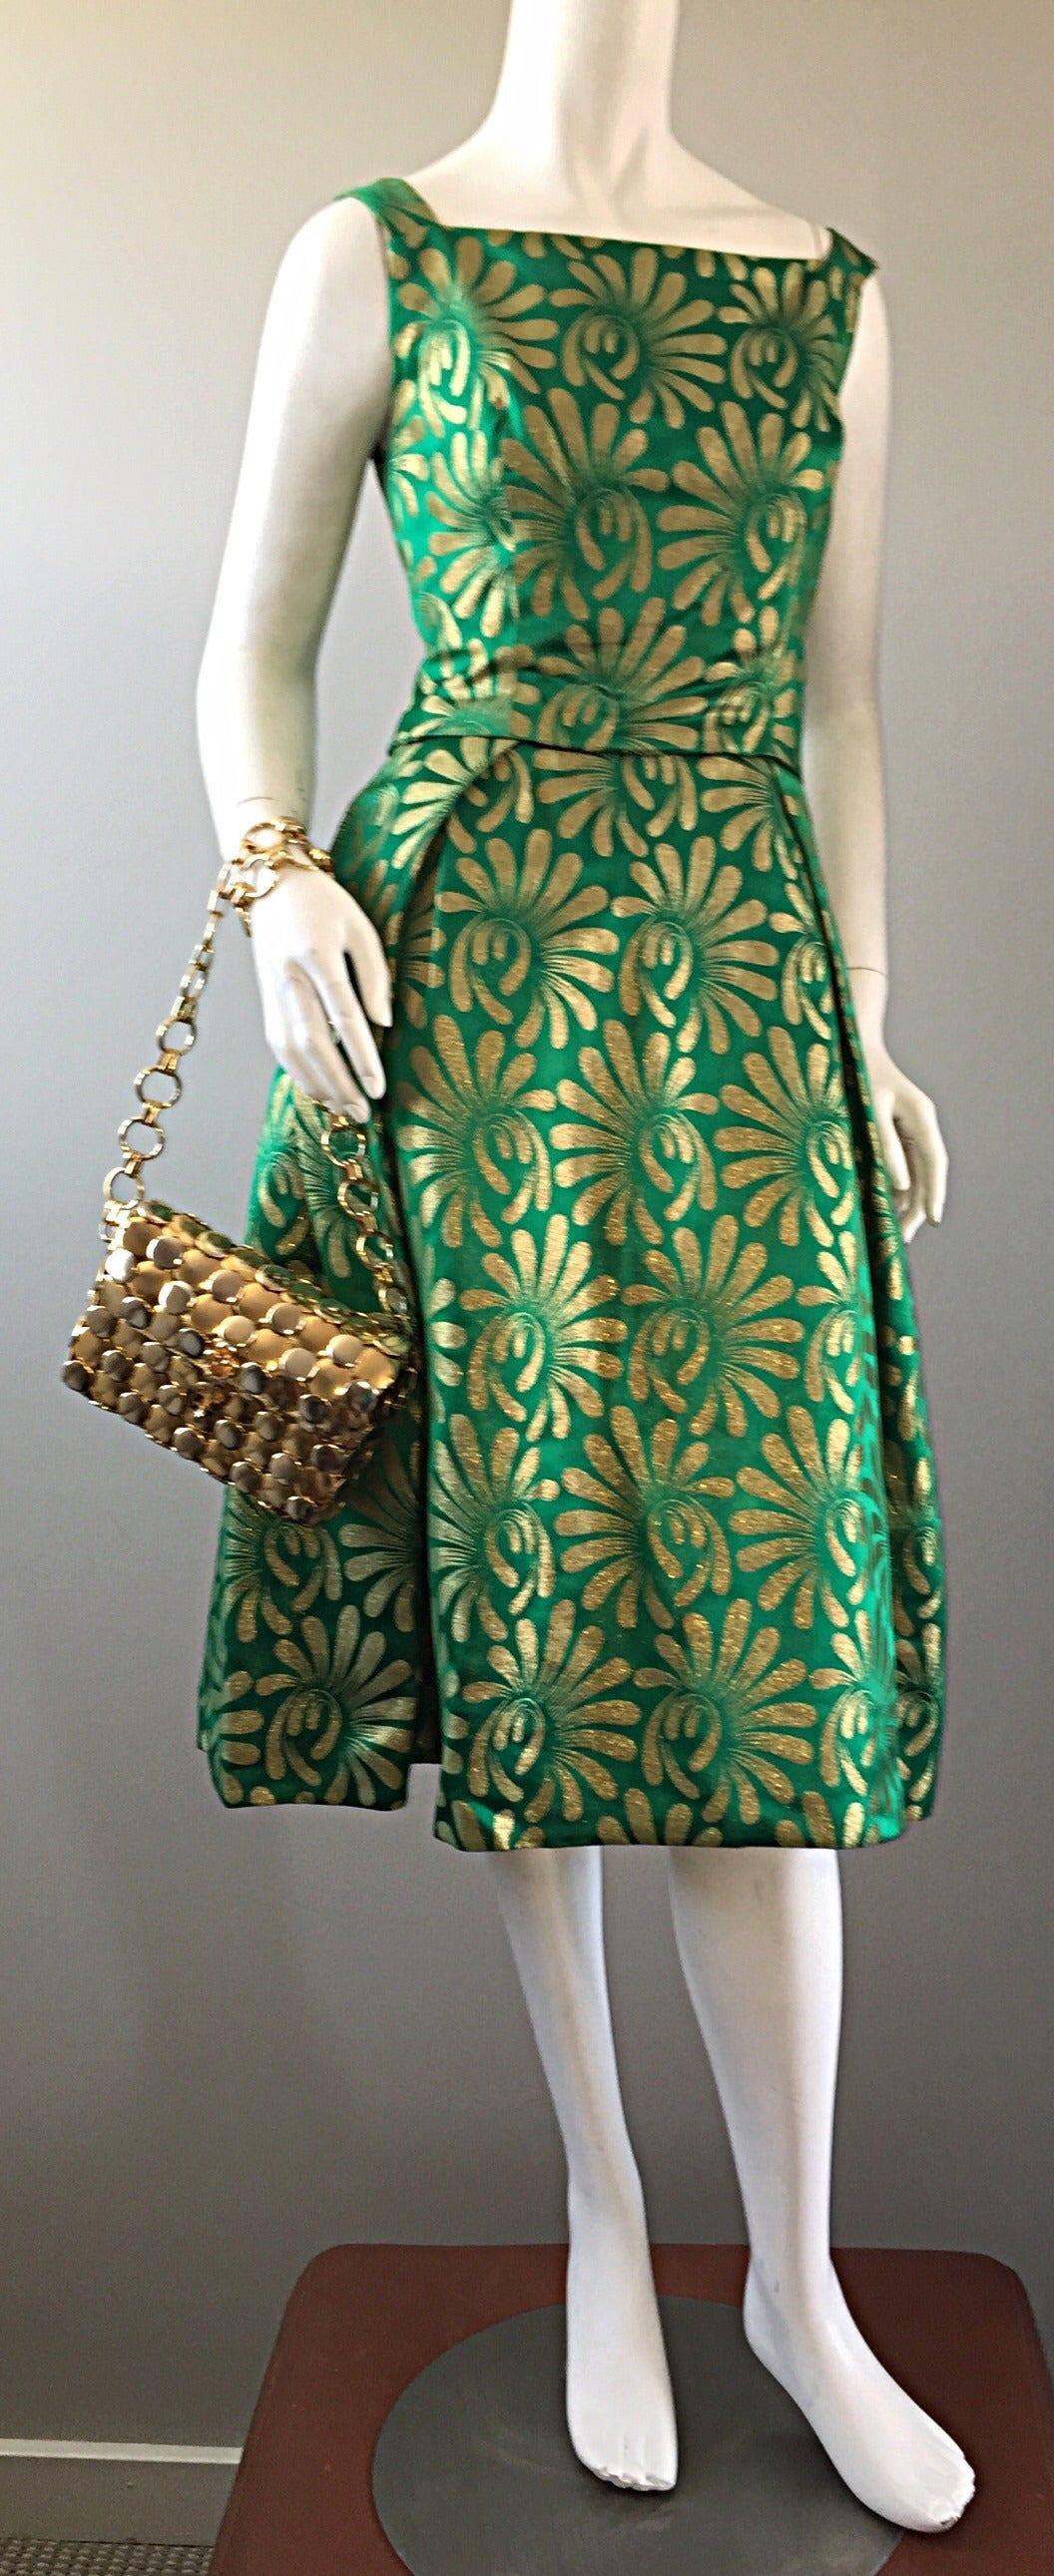 1950s 50s Vintage Blauner for Bonwit Teller Green + Gold ' New Look ' Silk Dress 7